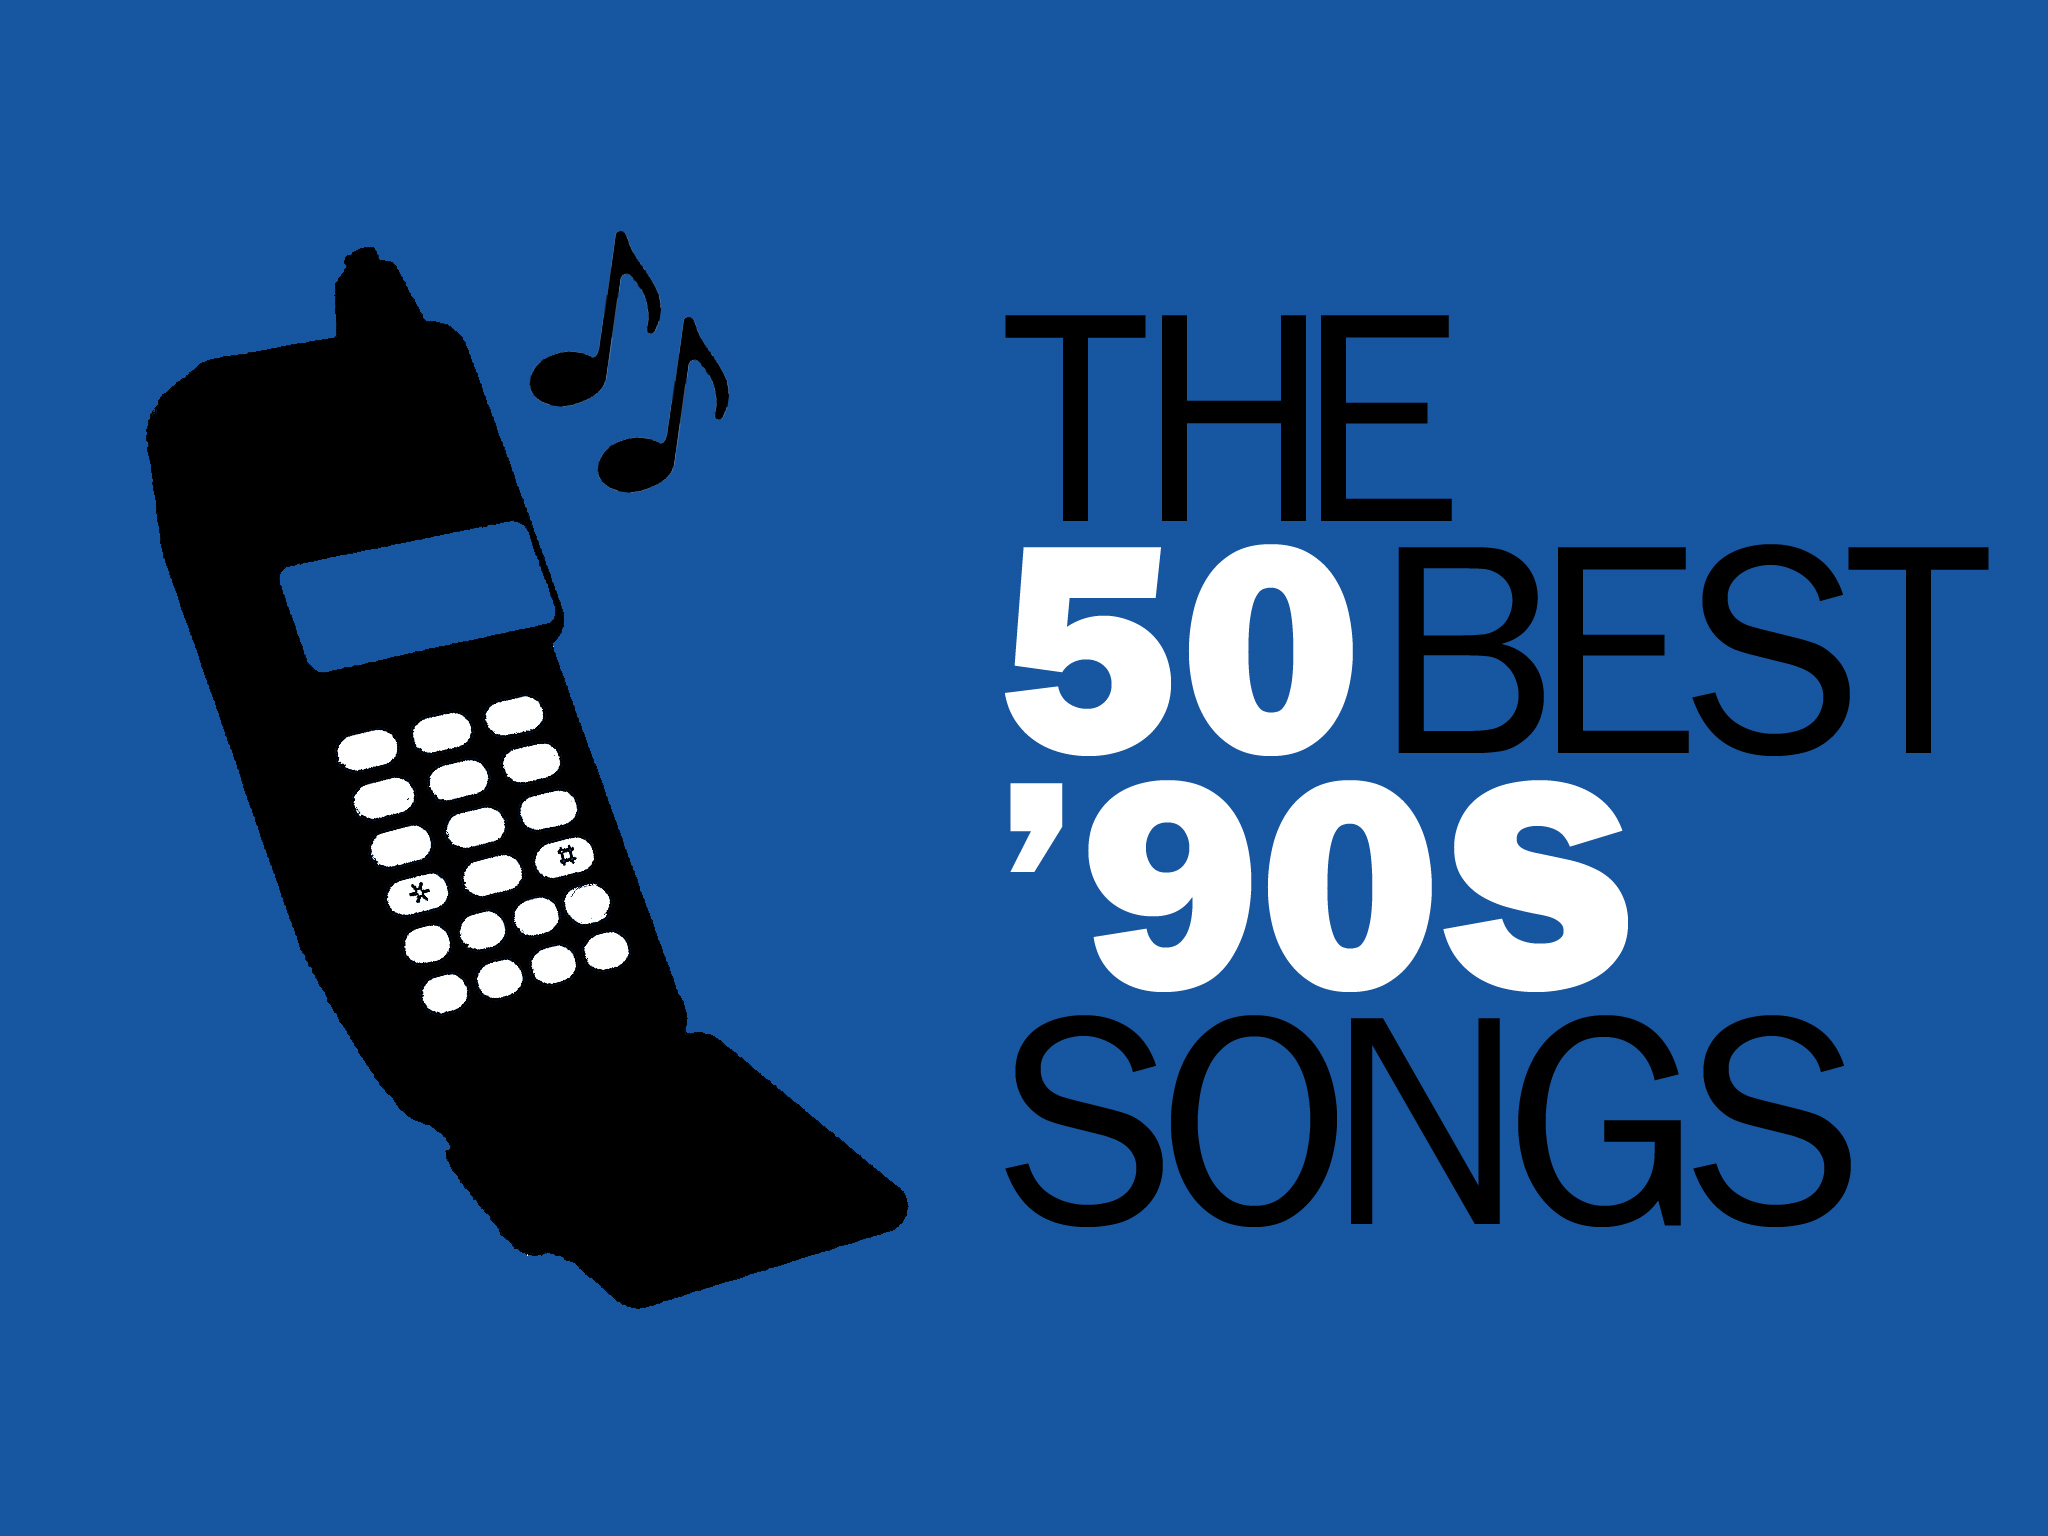 The 50 best '90s songs